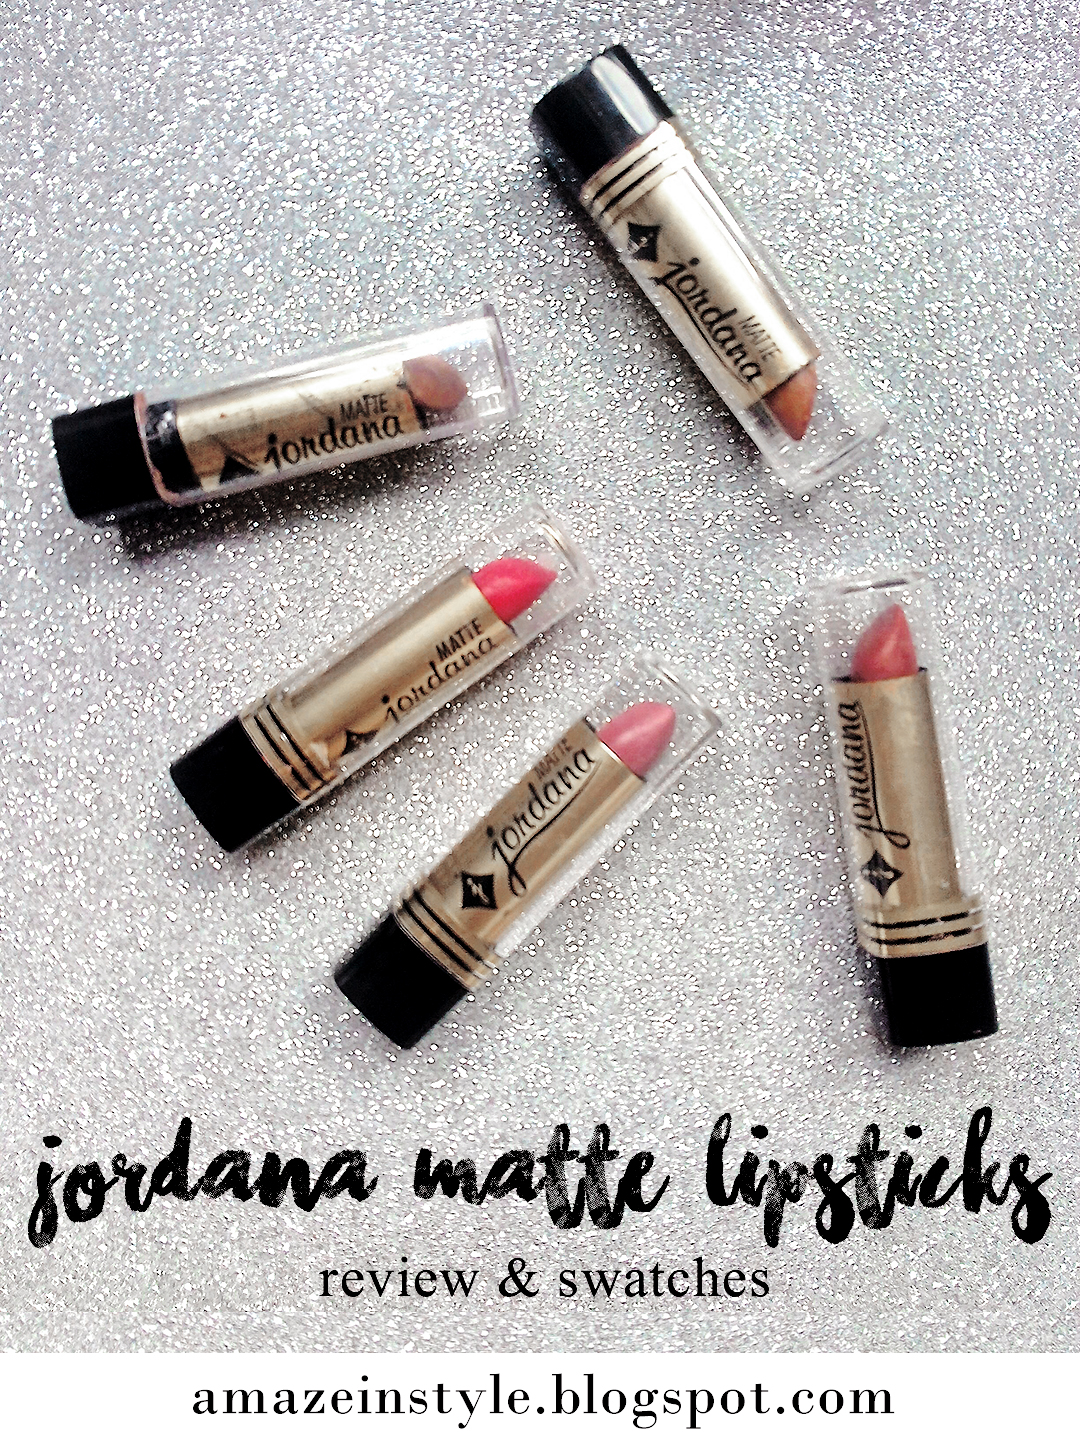 Amaze In Style: Jordana Matte Lipsticks — Review & Swatches